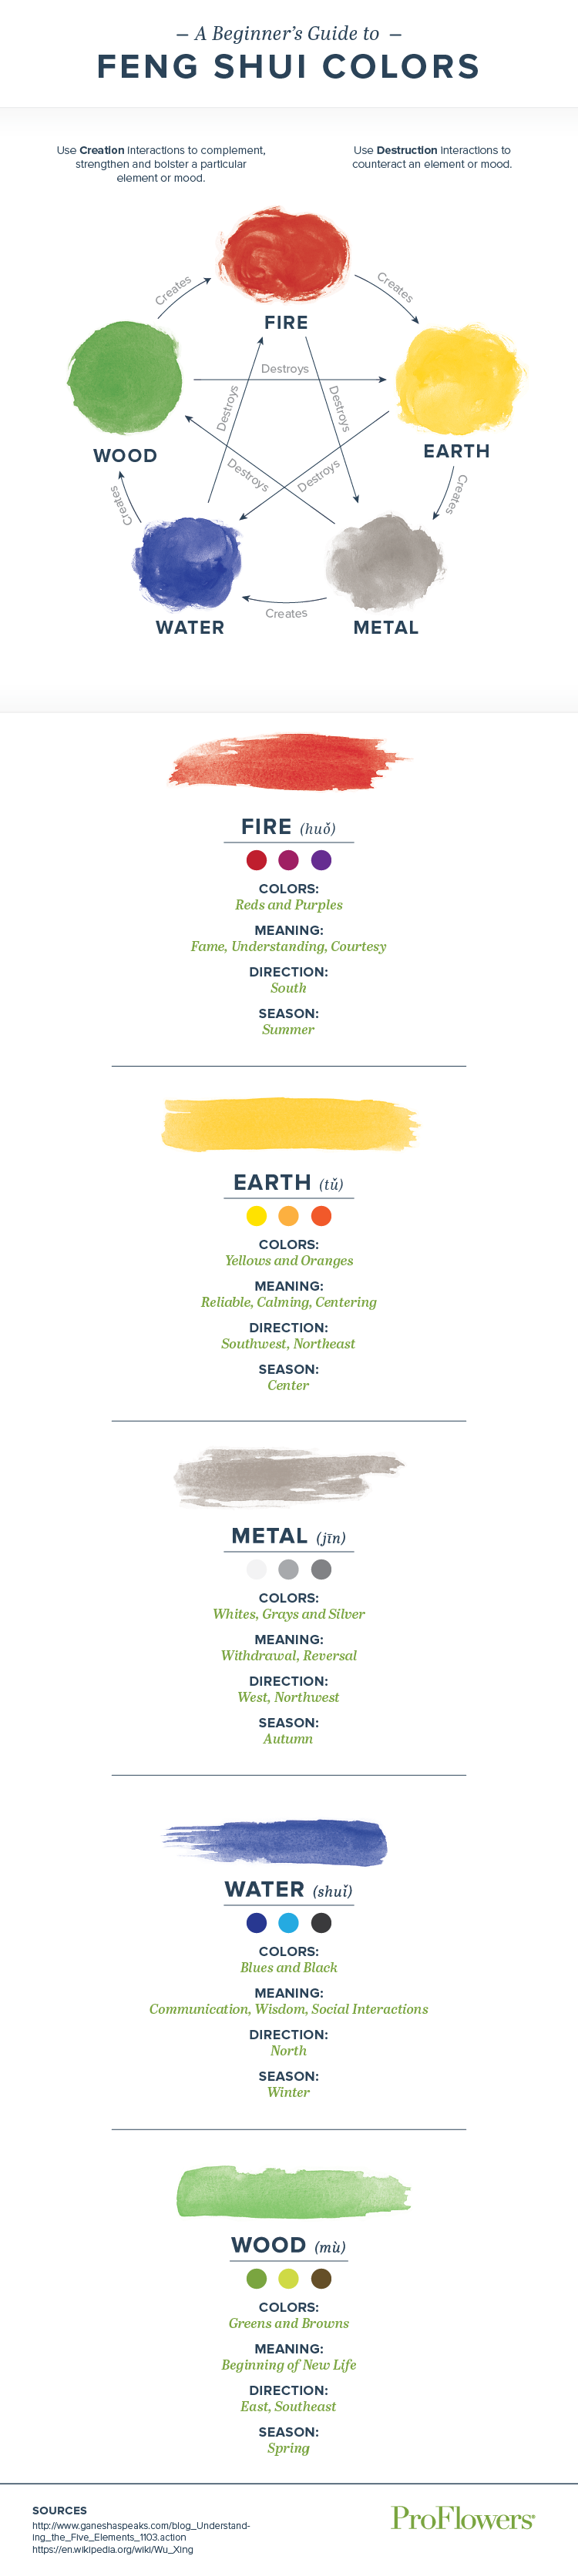 infographic of feng shui colors and meanings